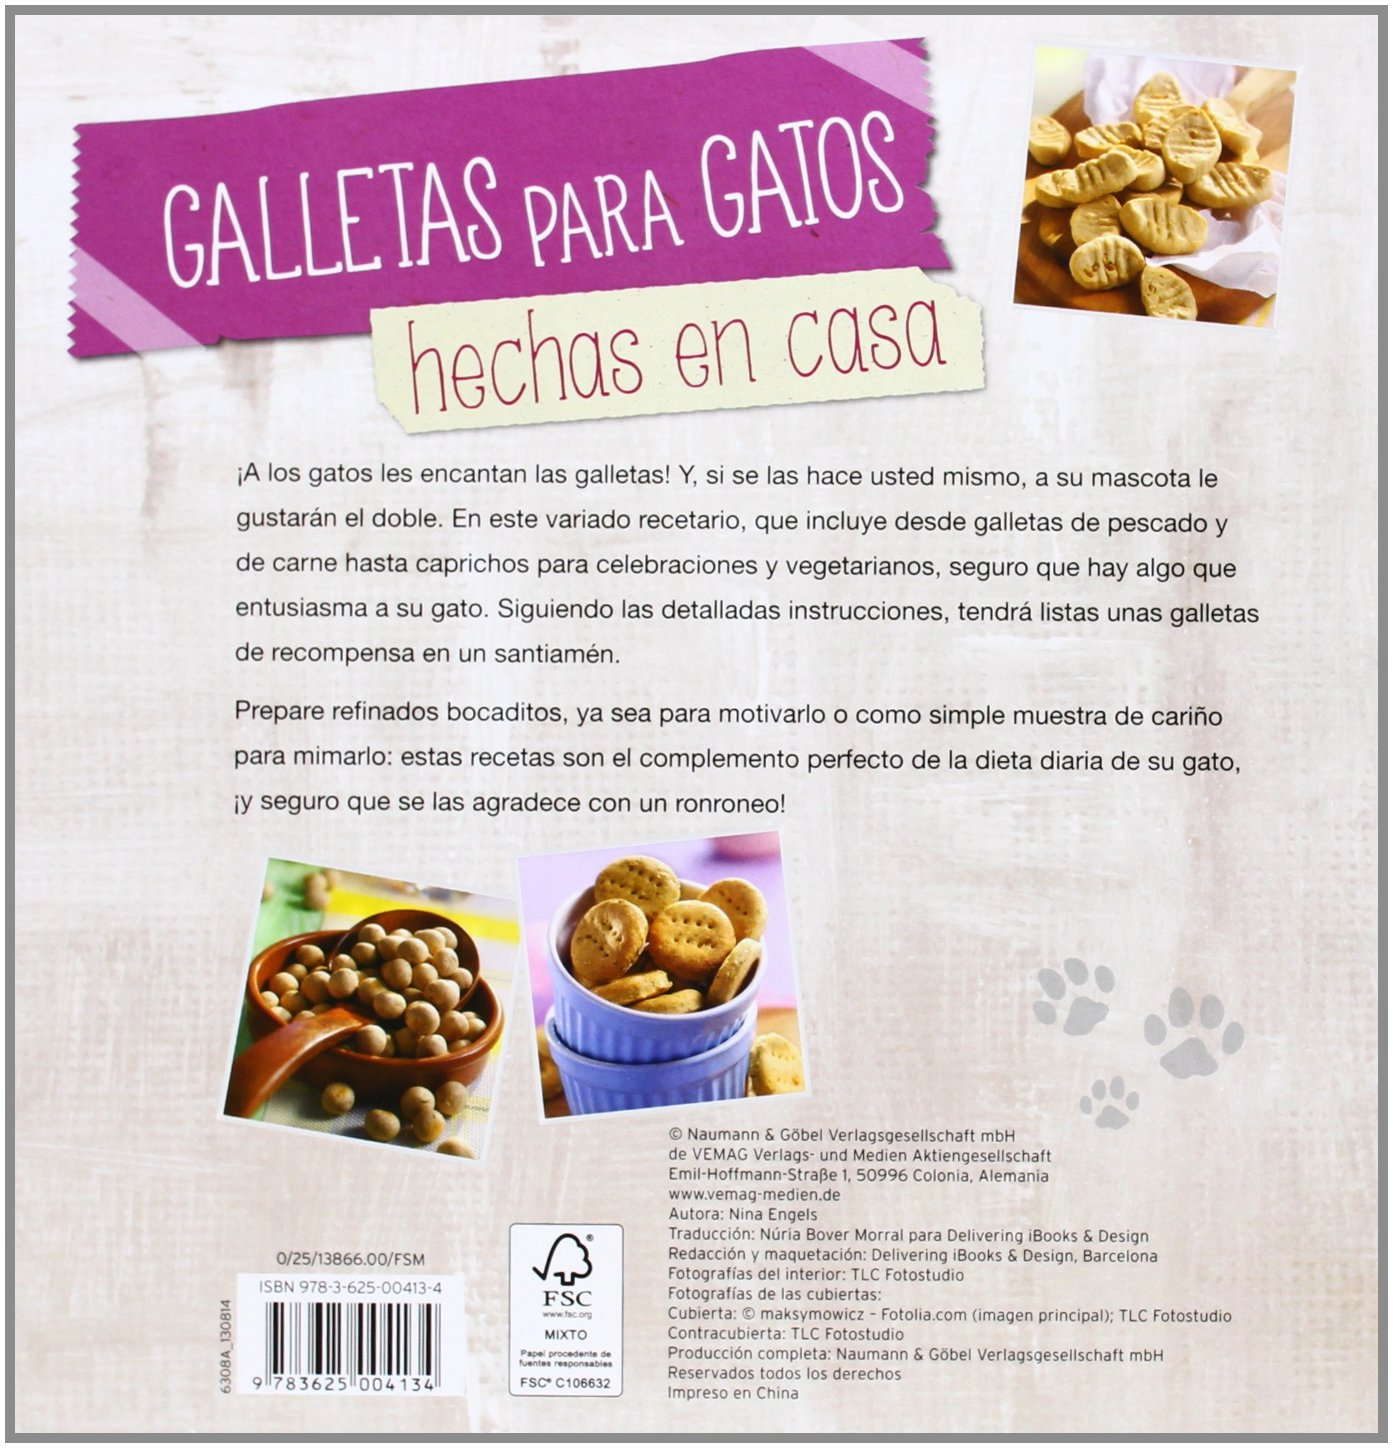 GALLETAS PARA GATOS.(HECHAS EN CASA): VV.AA.: 9783625004134: Amazon.com: Books